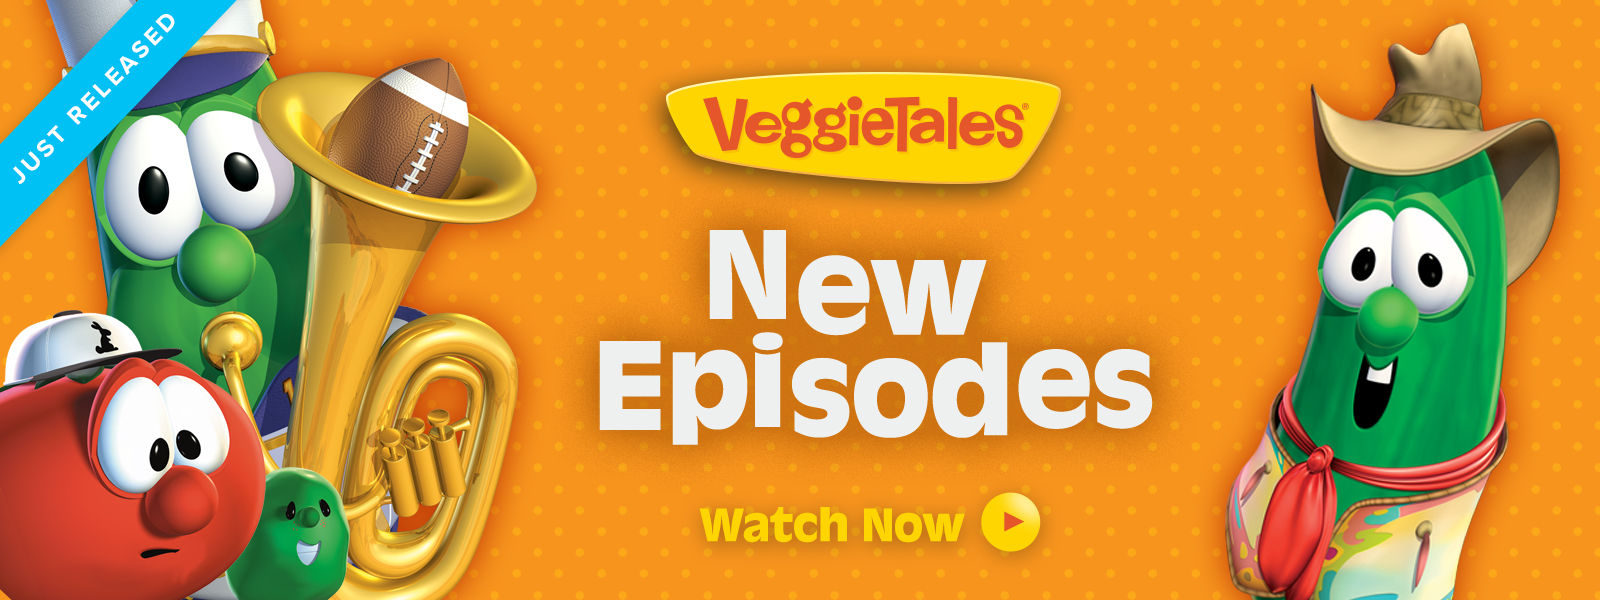 VeggieTales New Episodes